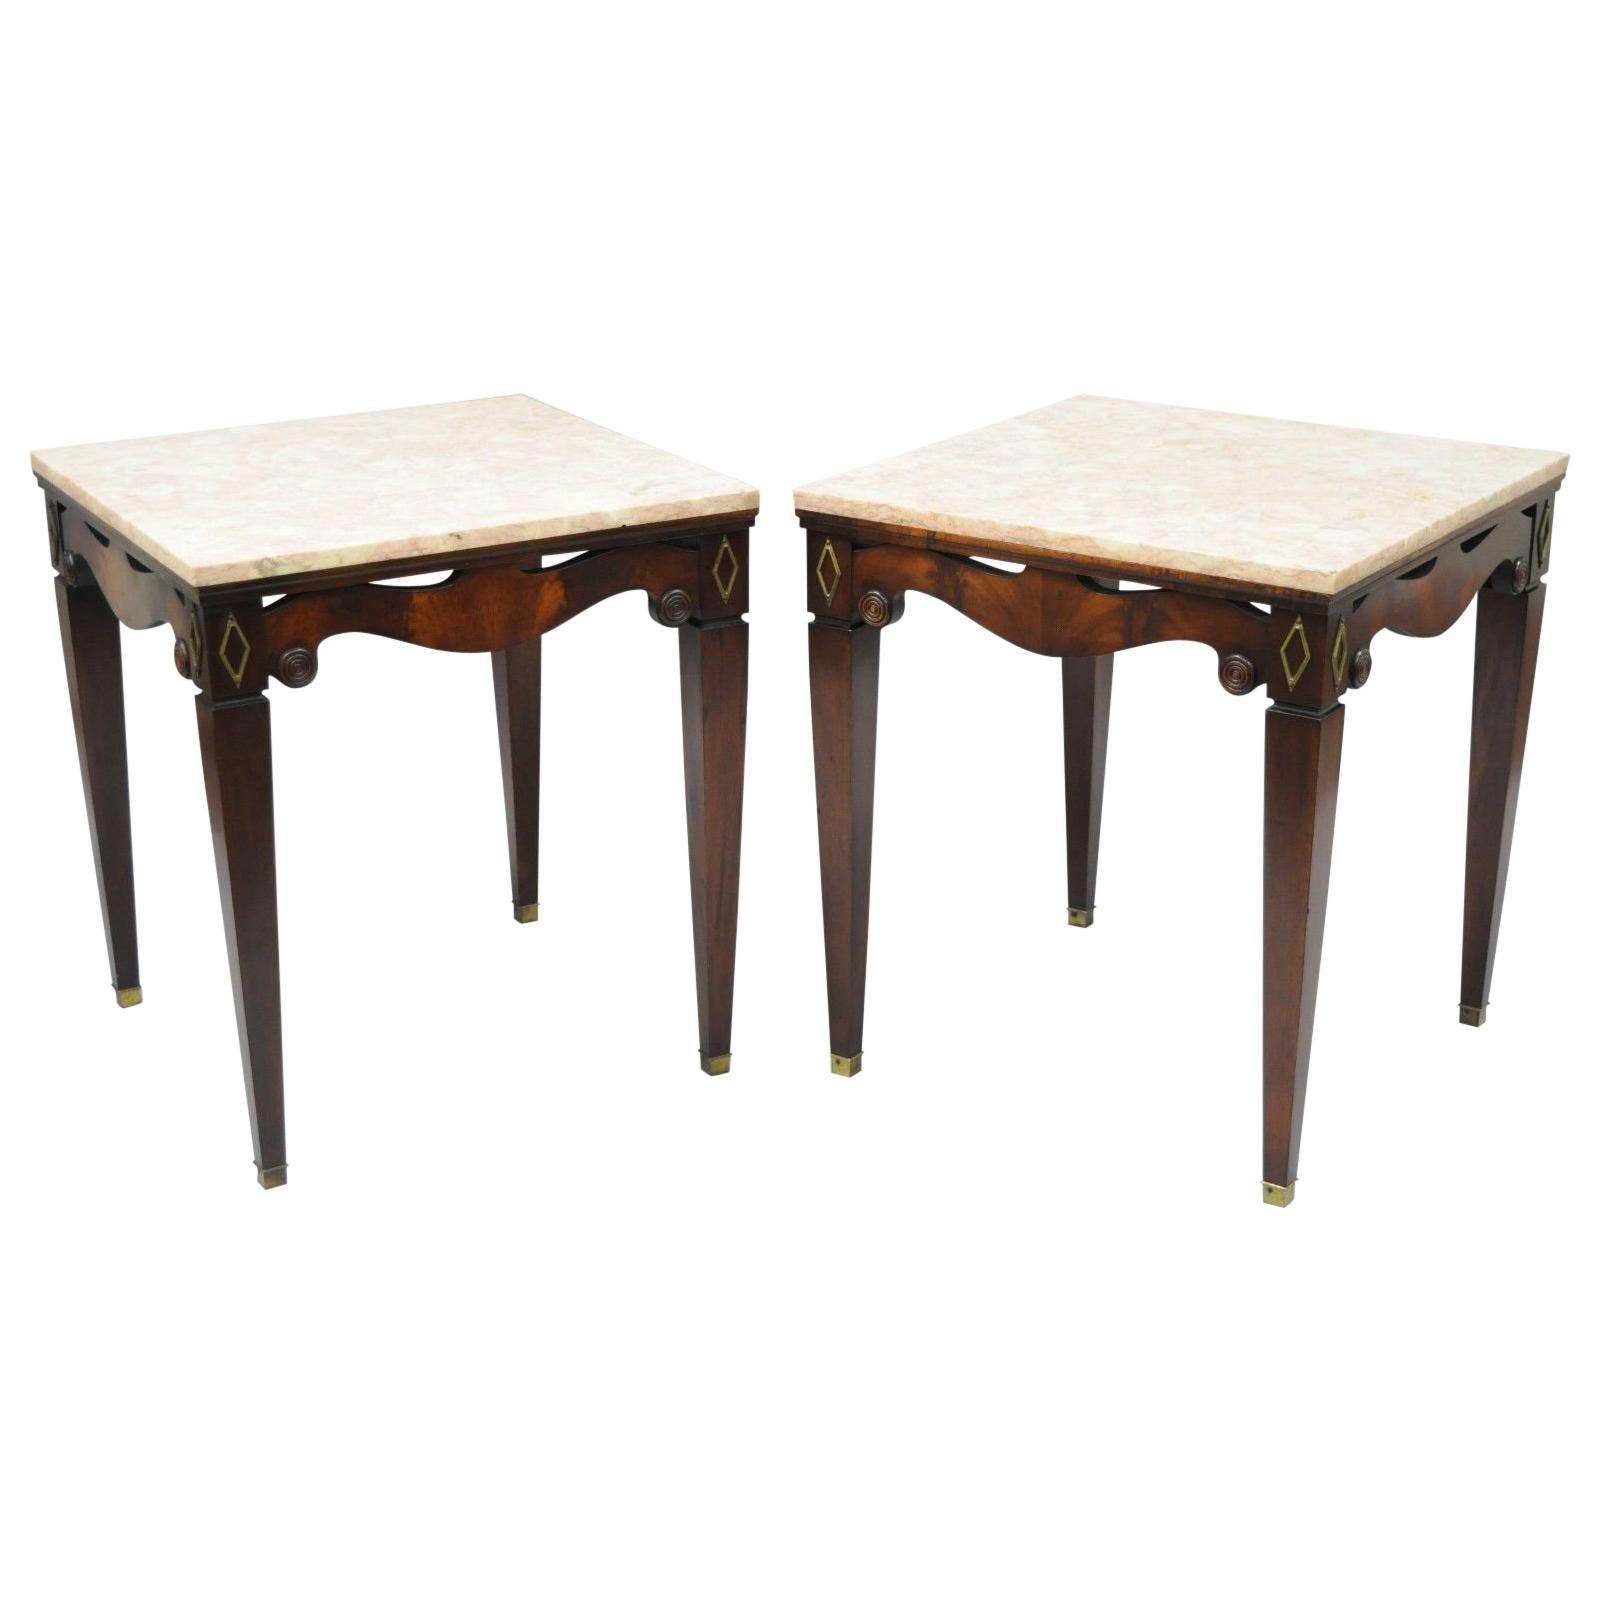 Gentil Pair Of Antique Pink Marble Top Mahogany End Tables Regency Square Weiman  Era